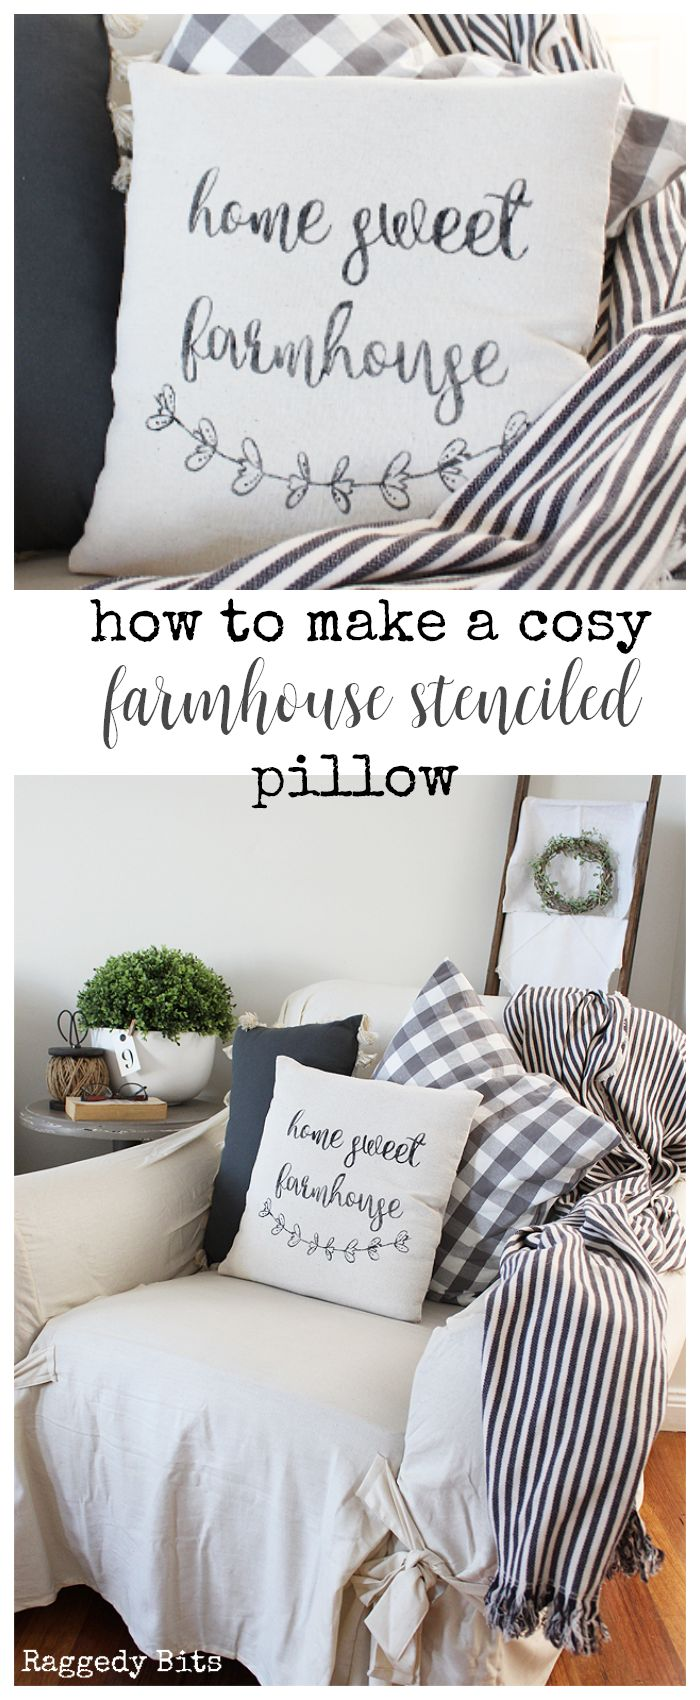 Using some drop cloth and a stencil sharing how to make a Cosy Farmhouse Stenciled Pillow   www.raggedy-bits.com   #farmhouse #diy #dropcloth #sewing #cosy #pillow #cushion